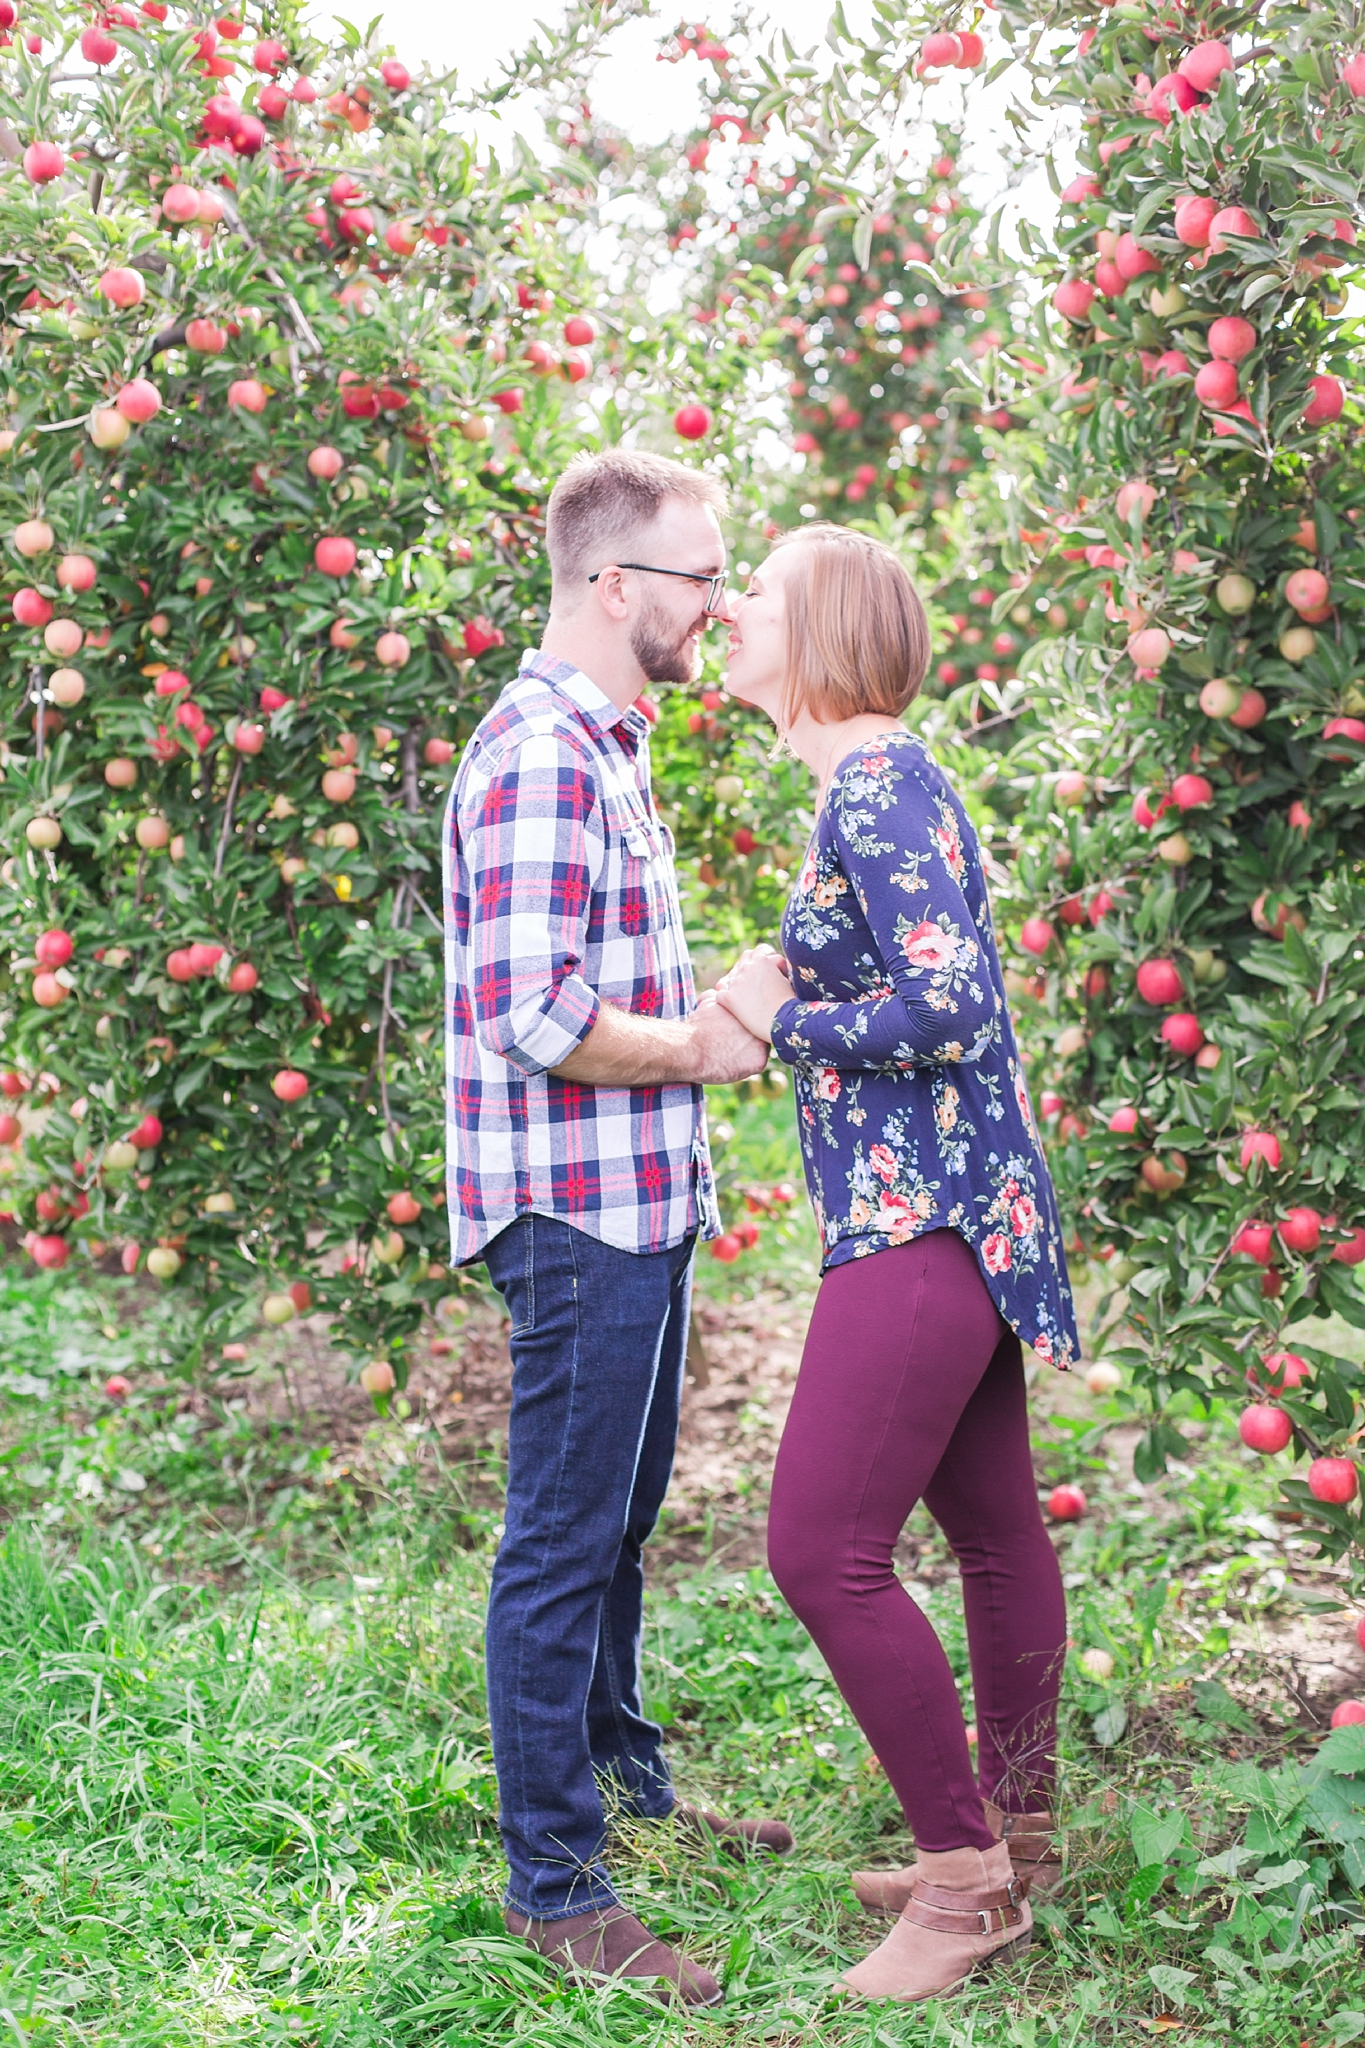 playful-fall-engagement-photos-at-hy's-cider-mill-ochard-in-bruce-township-michigan-by-courtney-carolyn-photography_0023.jpg